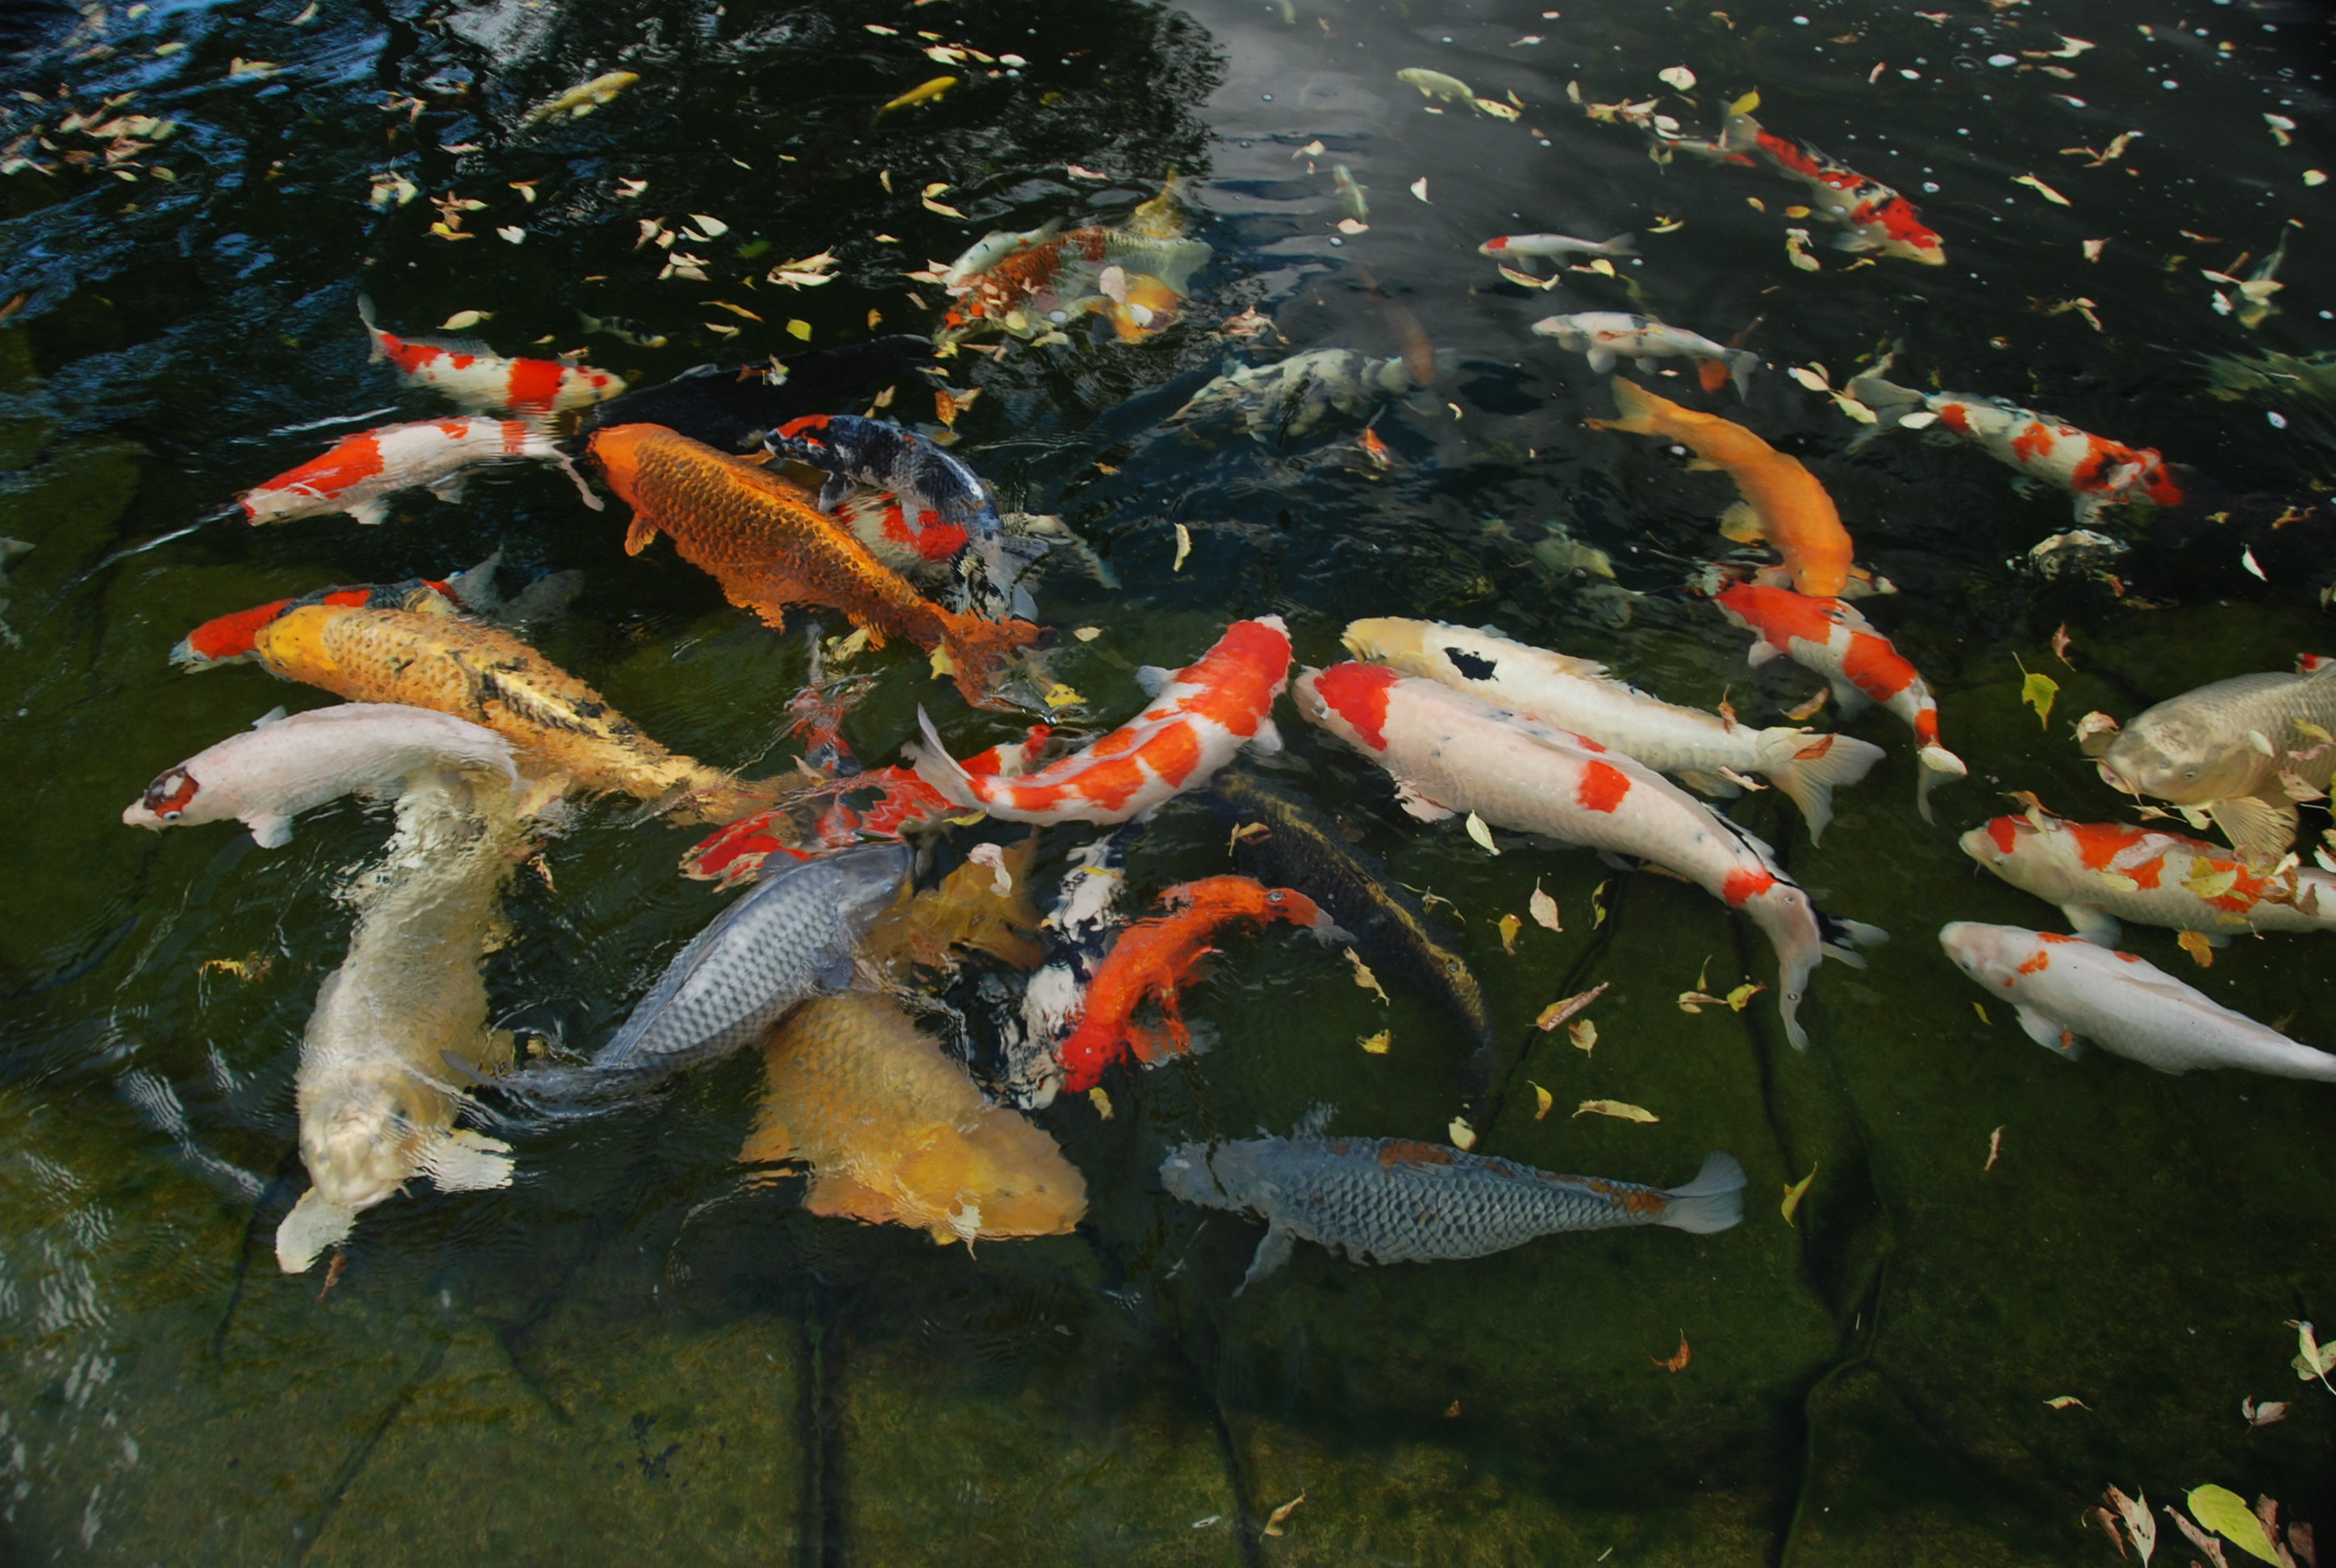 Koi acres imported japanese koi online shopping for koi for The koi pool